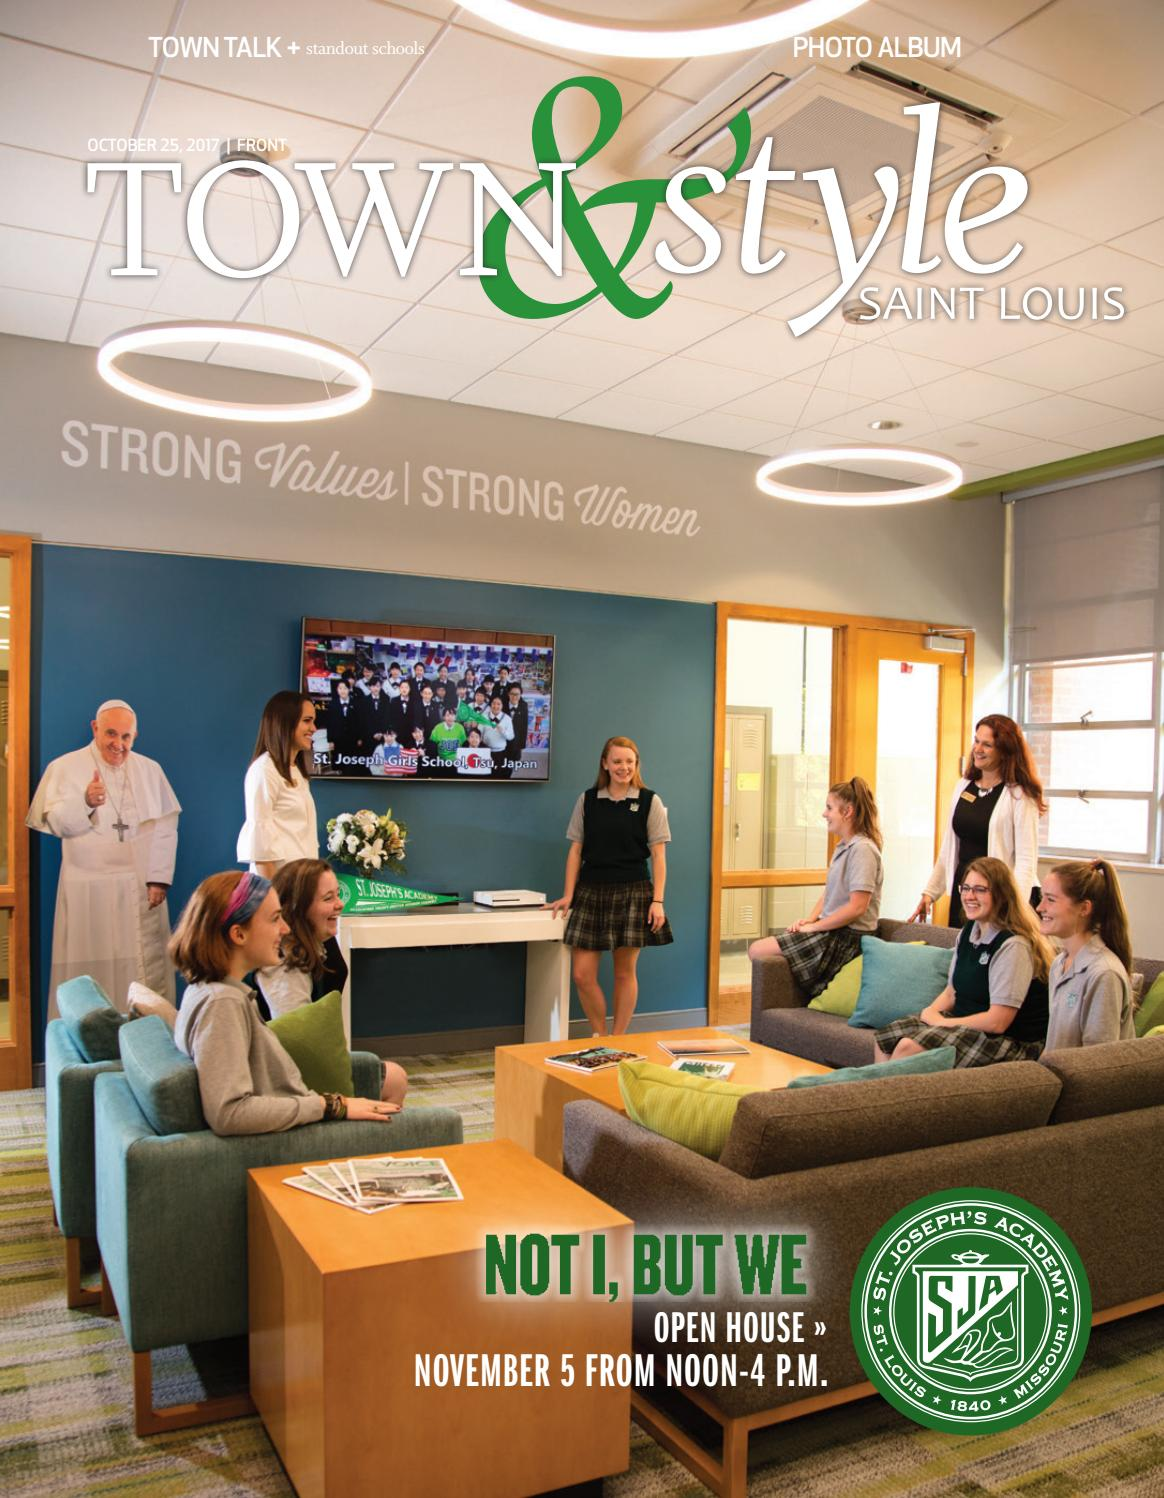 362cc264322435 Town   Style 10.25.17 by St. Louis Town   Style - issuu